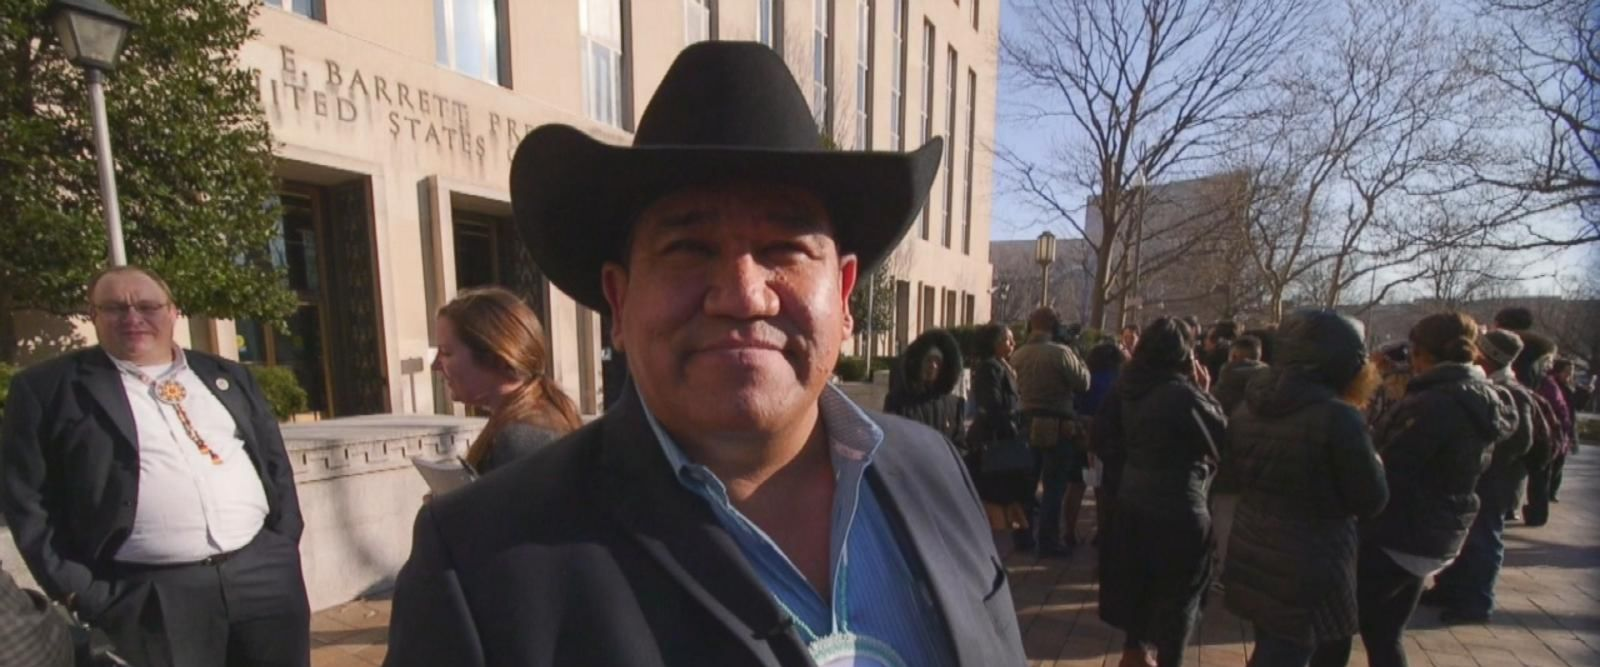 VIDEO: Cheyenne River Sioux Tribe Chairman's DAPL Fight in Washington